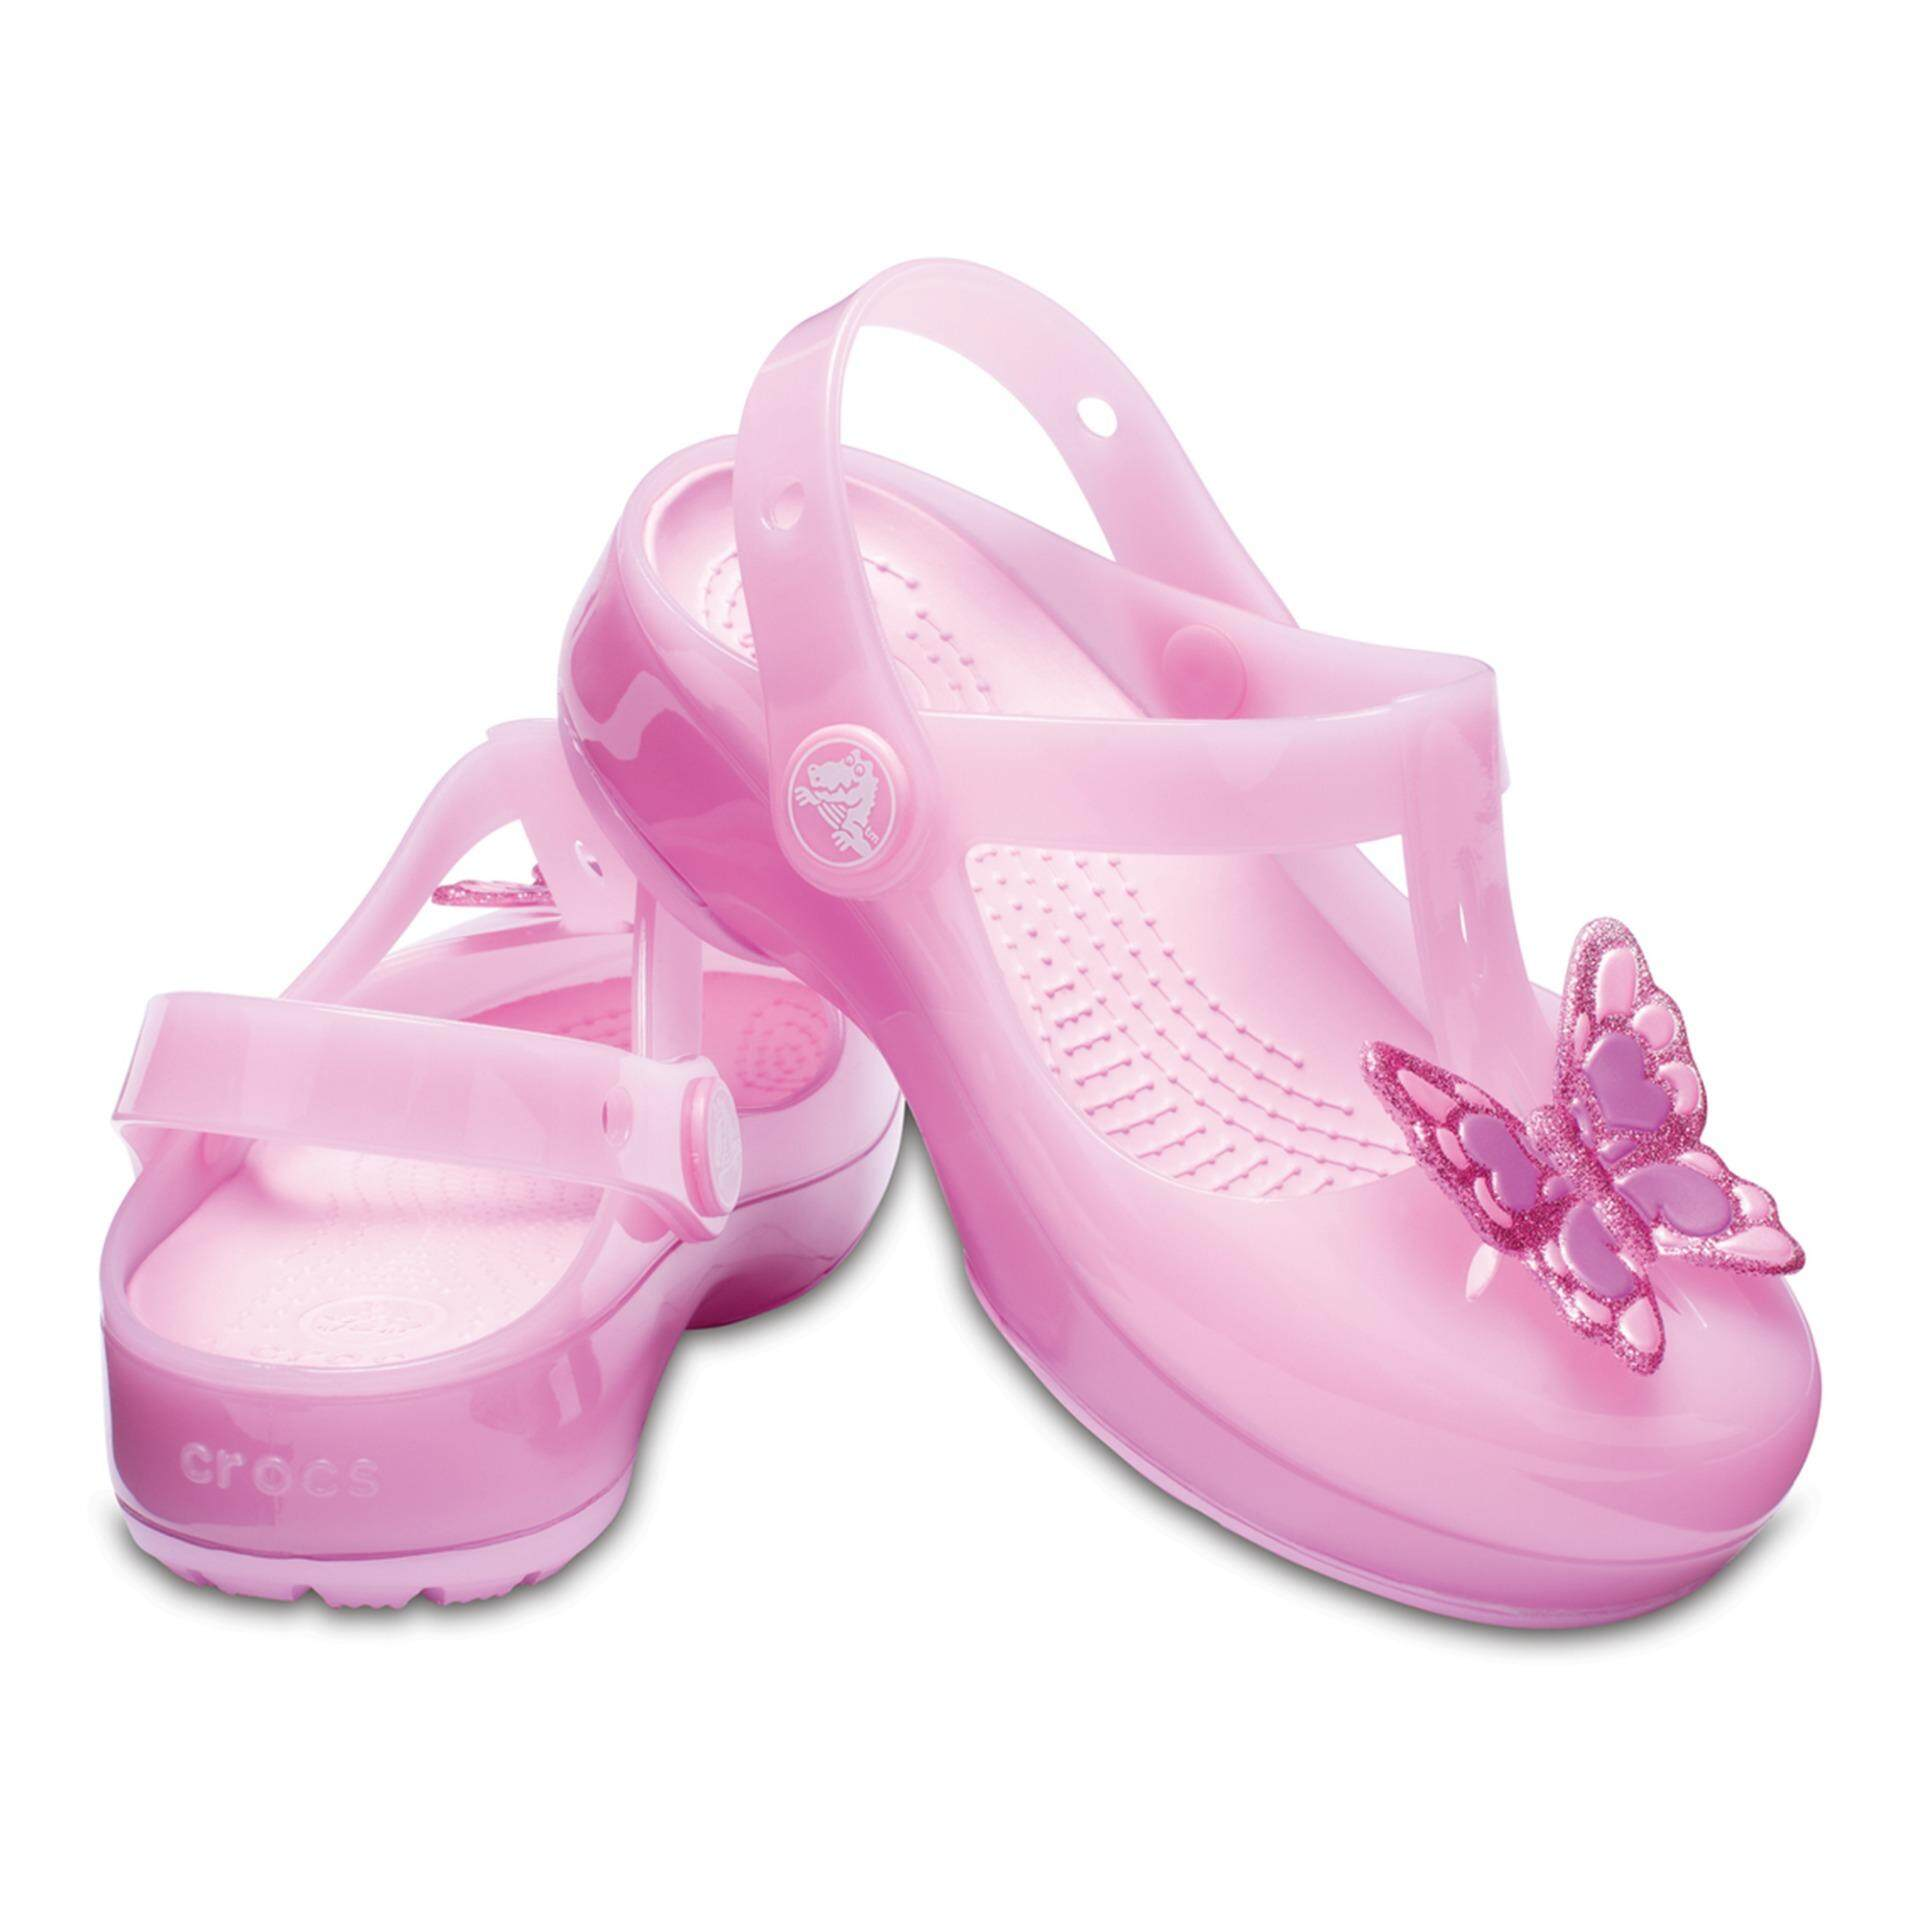 a12c70291610 CROCS Products for the Best Prices in Malaysia